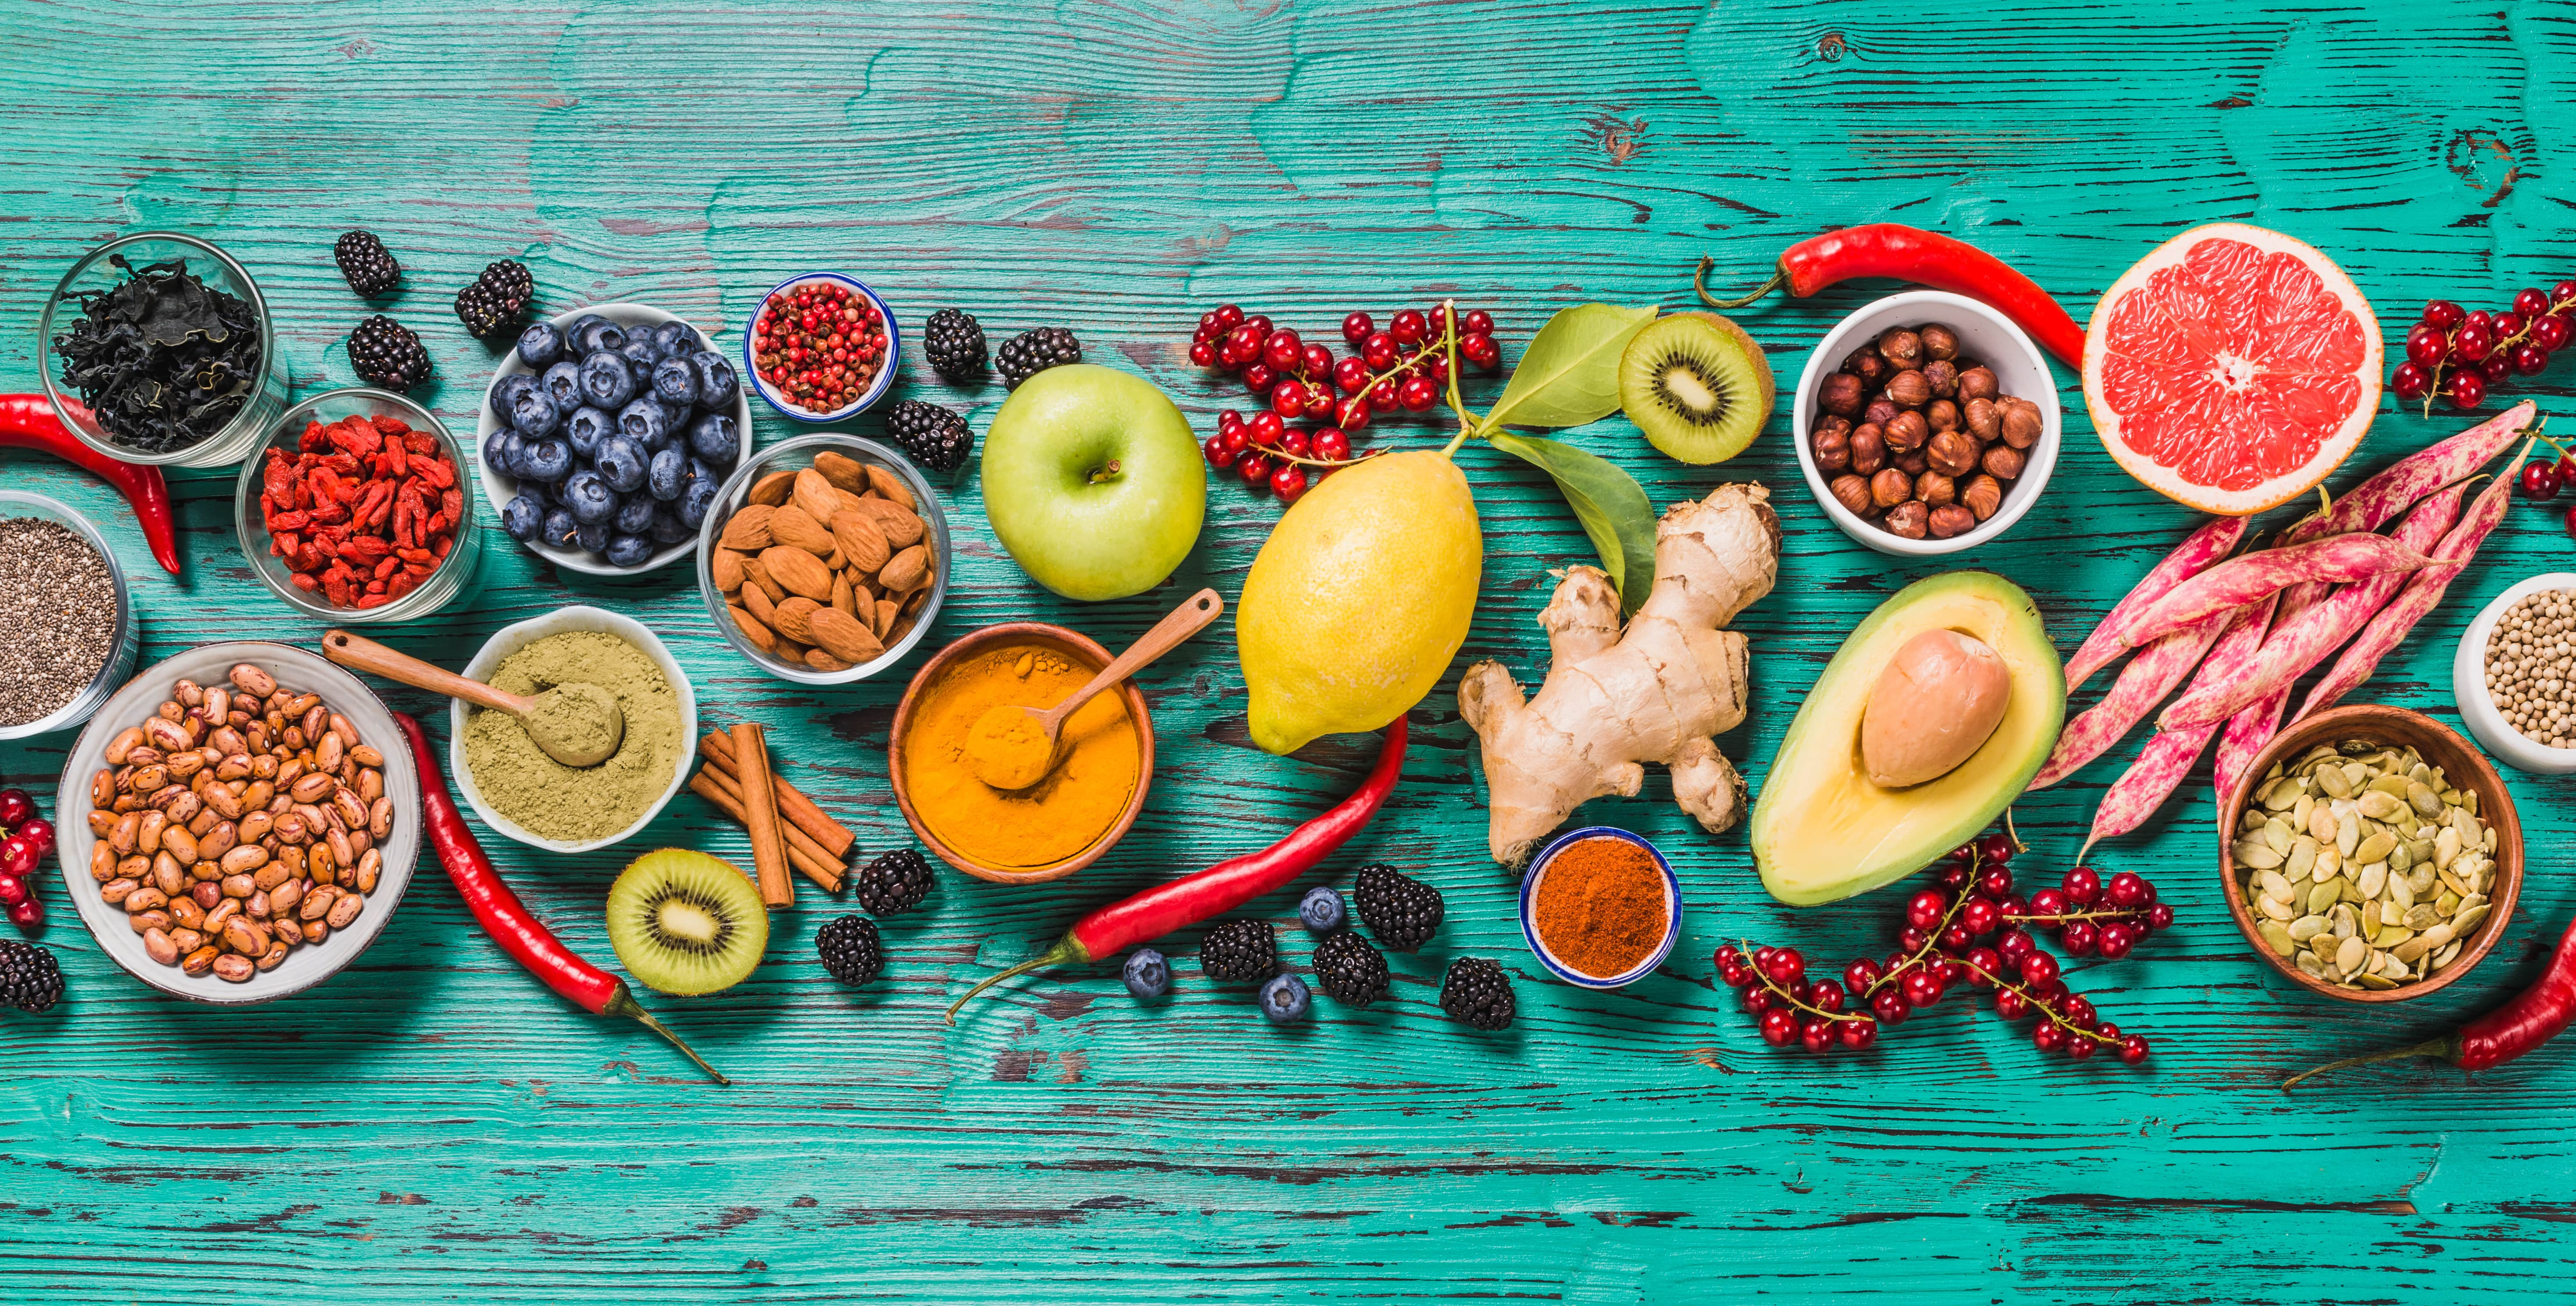 6 Superfoods That Can Help Improve Your Health